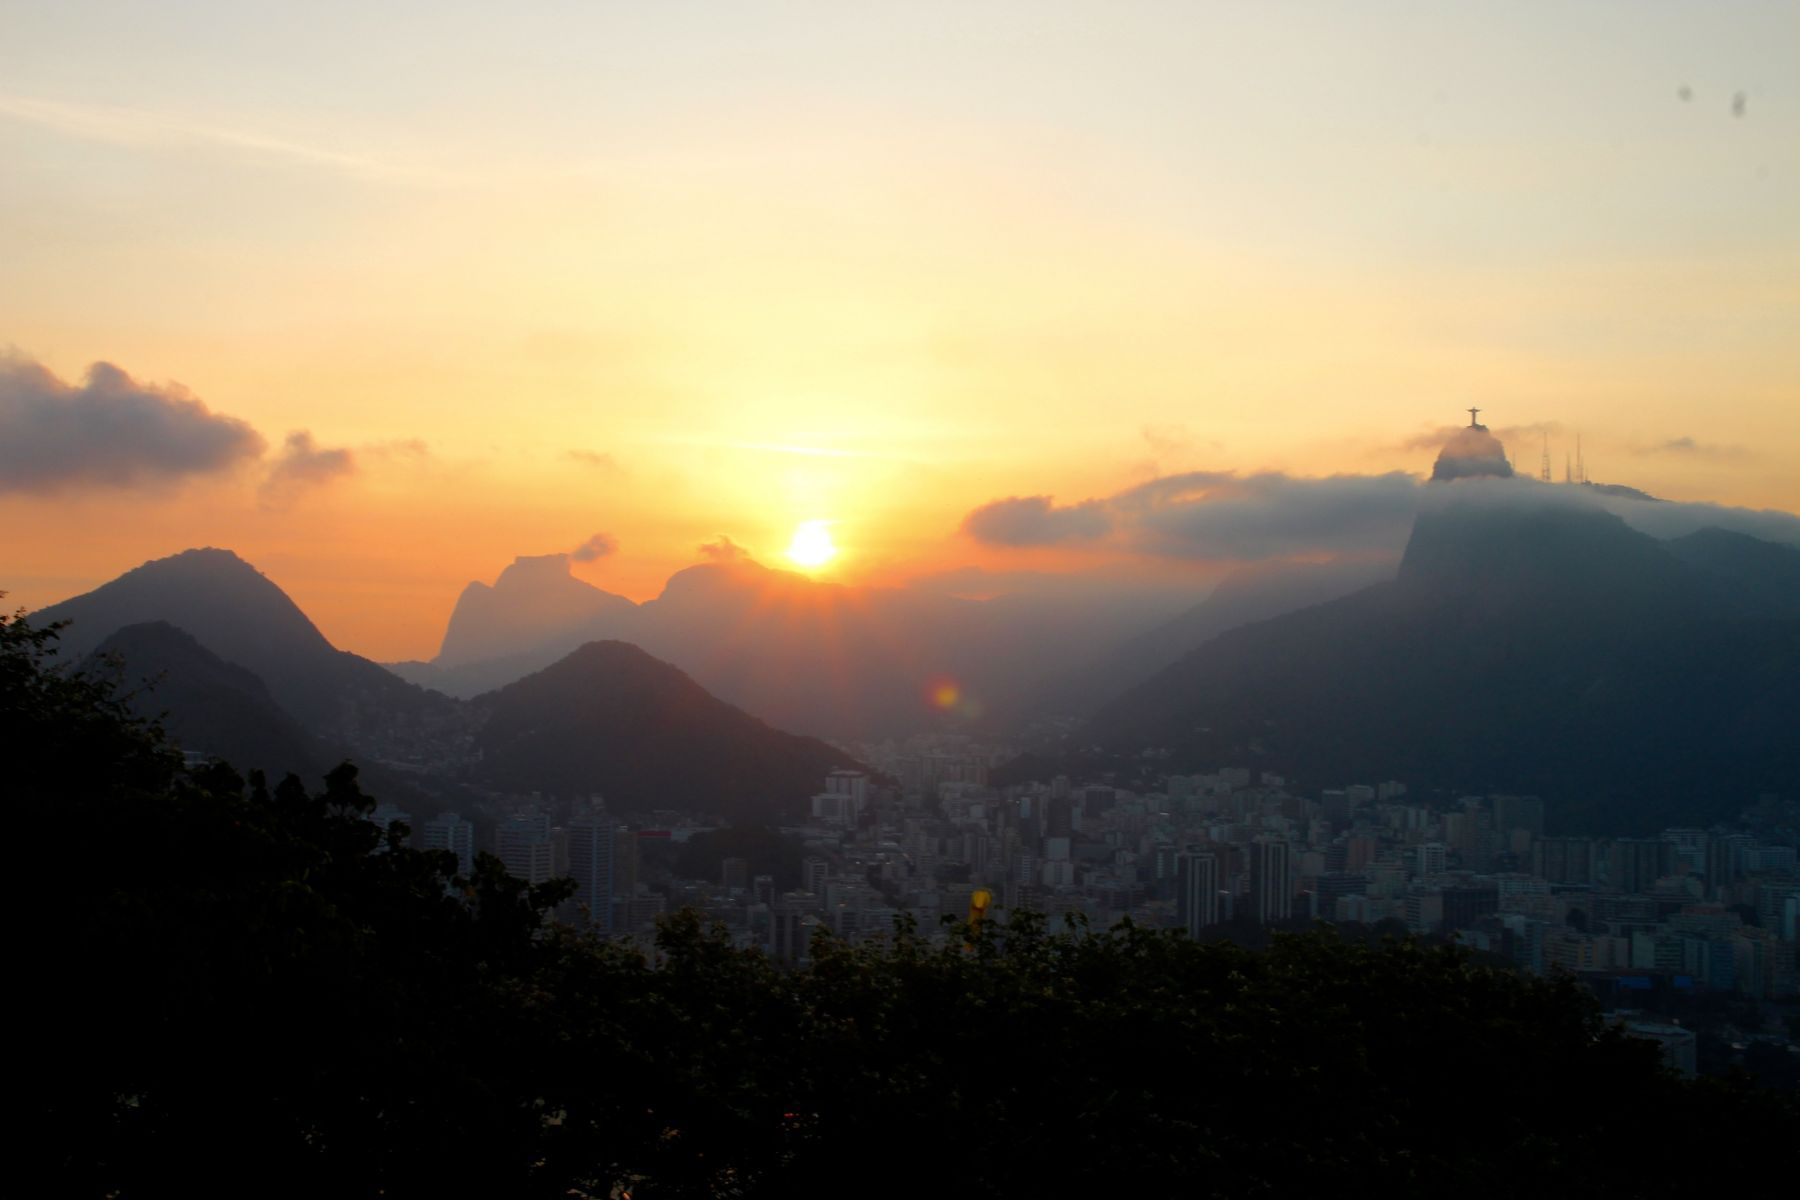 Cristo Redentor watches over the city as the sun sets.